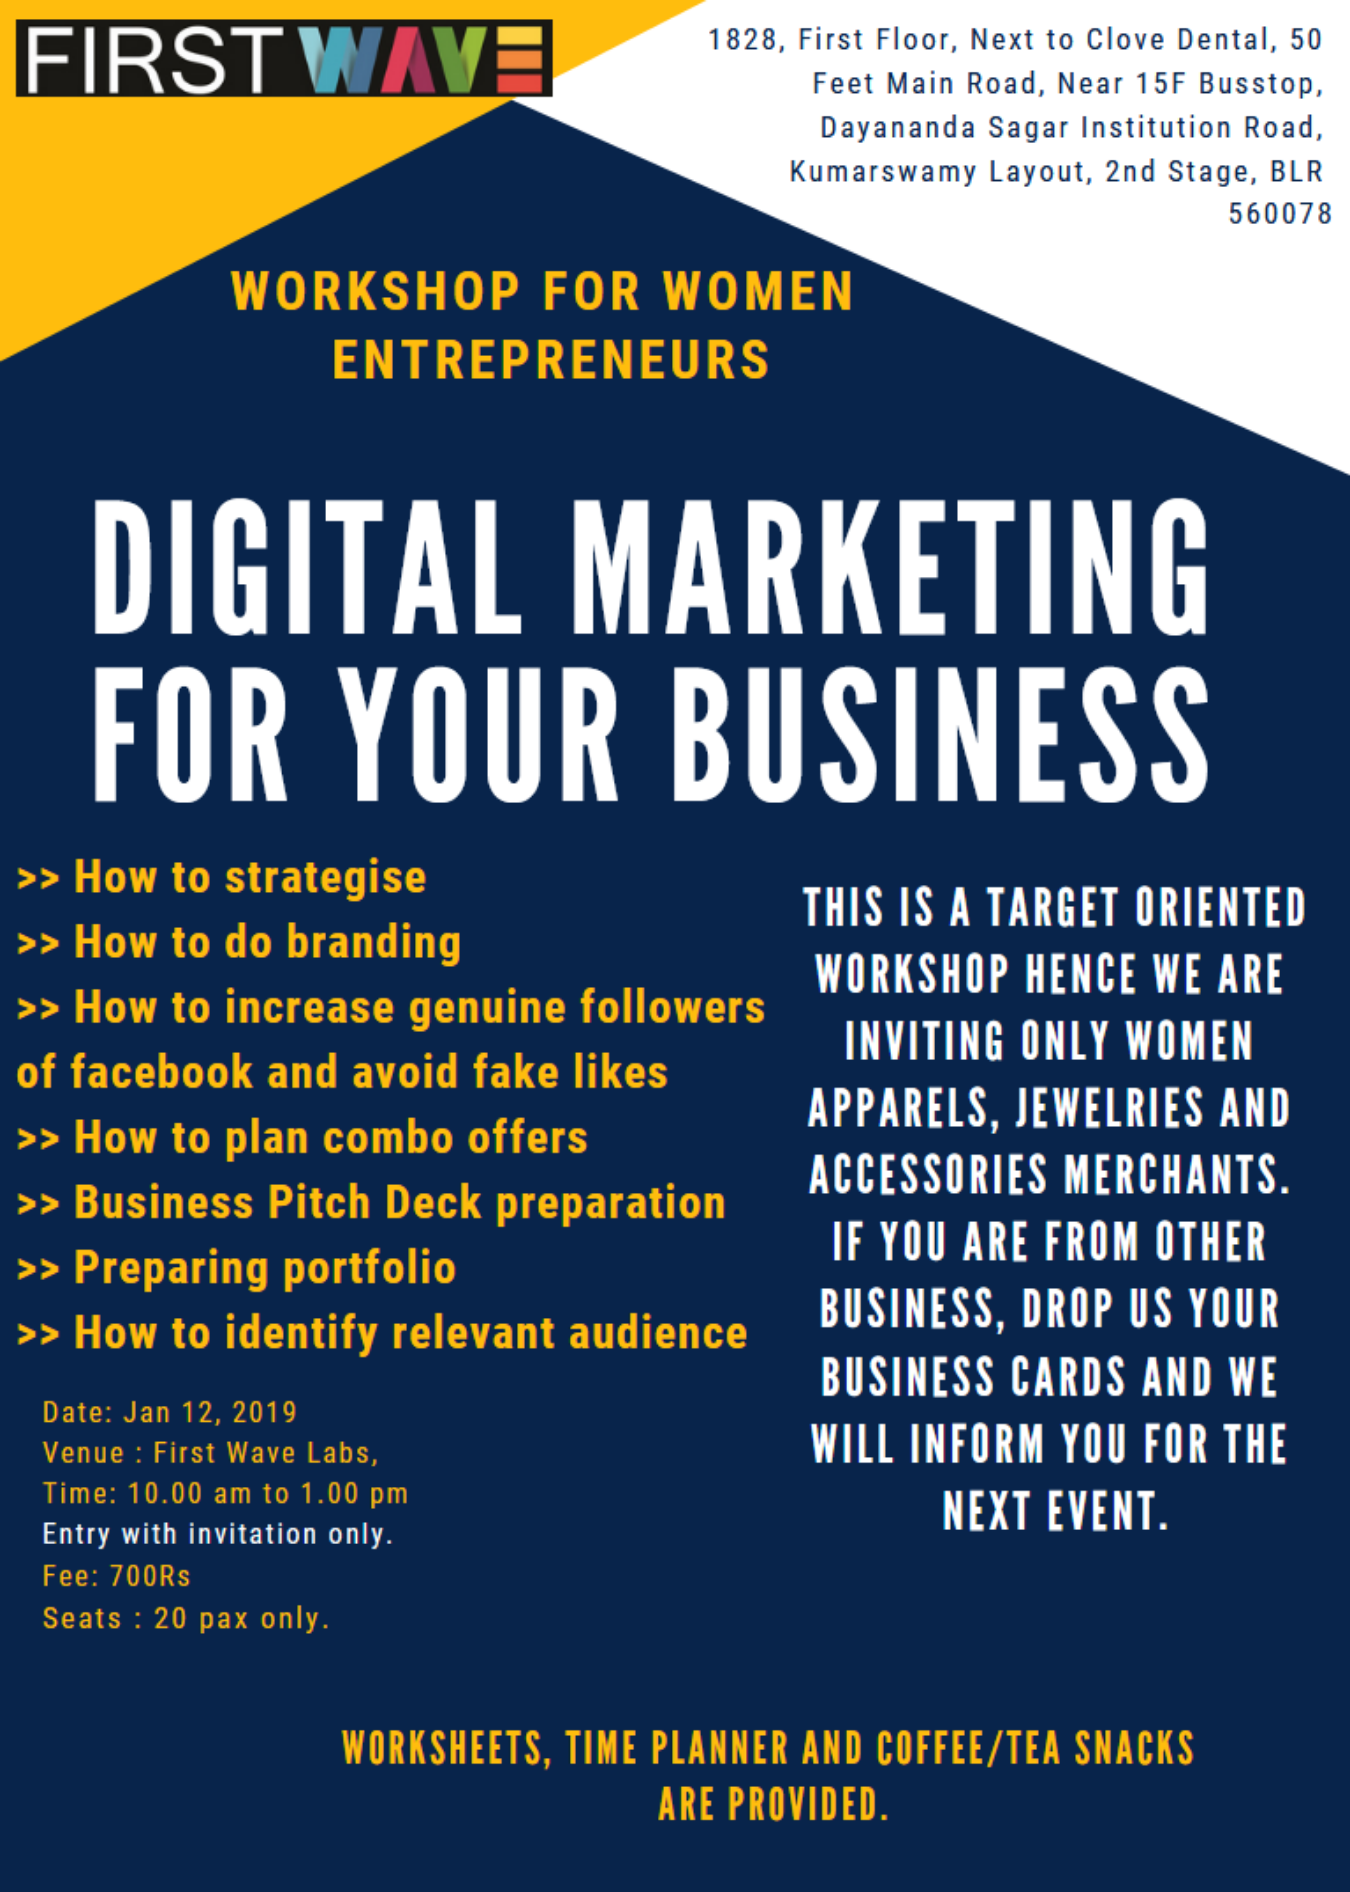 Workshop for Women Entrepreneurs - Digital Marketing for your business  Tickets by Shruthi Bharadwaj, 12 Jan, 2019, Bengaluru Event